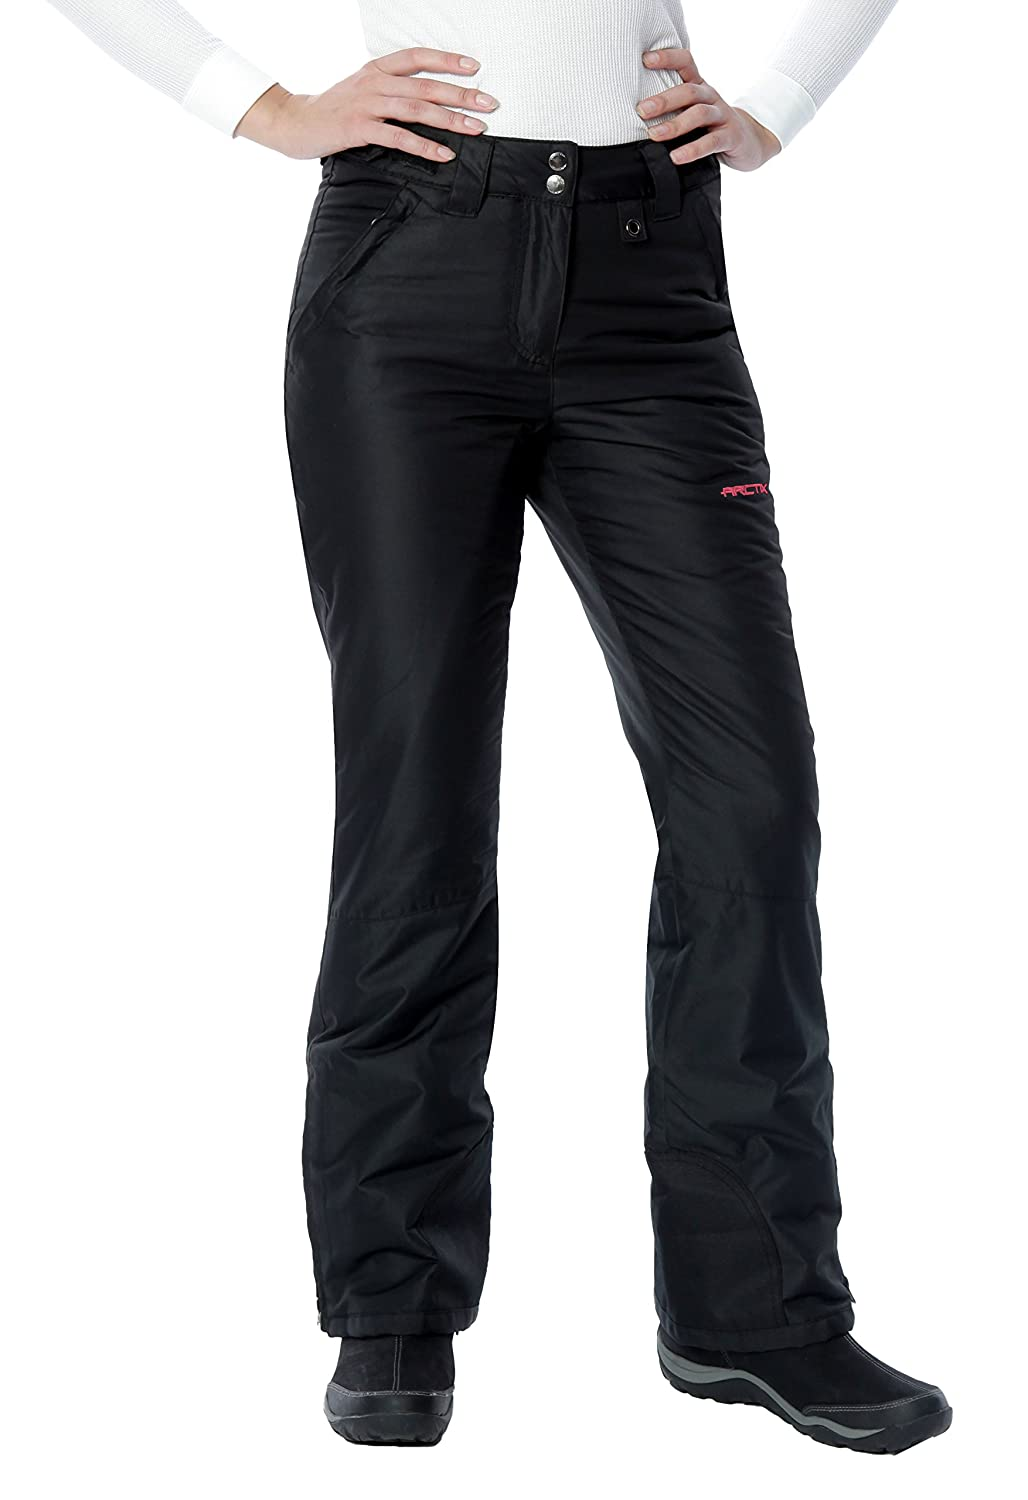 The Arctix Women's Insulated Snow Pant is made for everyday winter activities, but it's also ideal for staying warm while sitting or standing at outdoor events. Arctix uses innovative fabrics and manufactures in large quantities in order to offer the Women's Insulated Snow Pant at an exceptional trueufilv3f.gas: 3K.